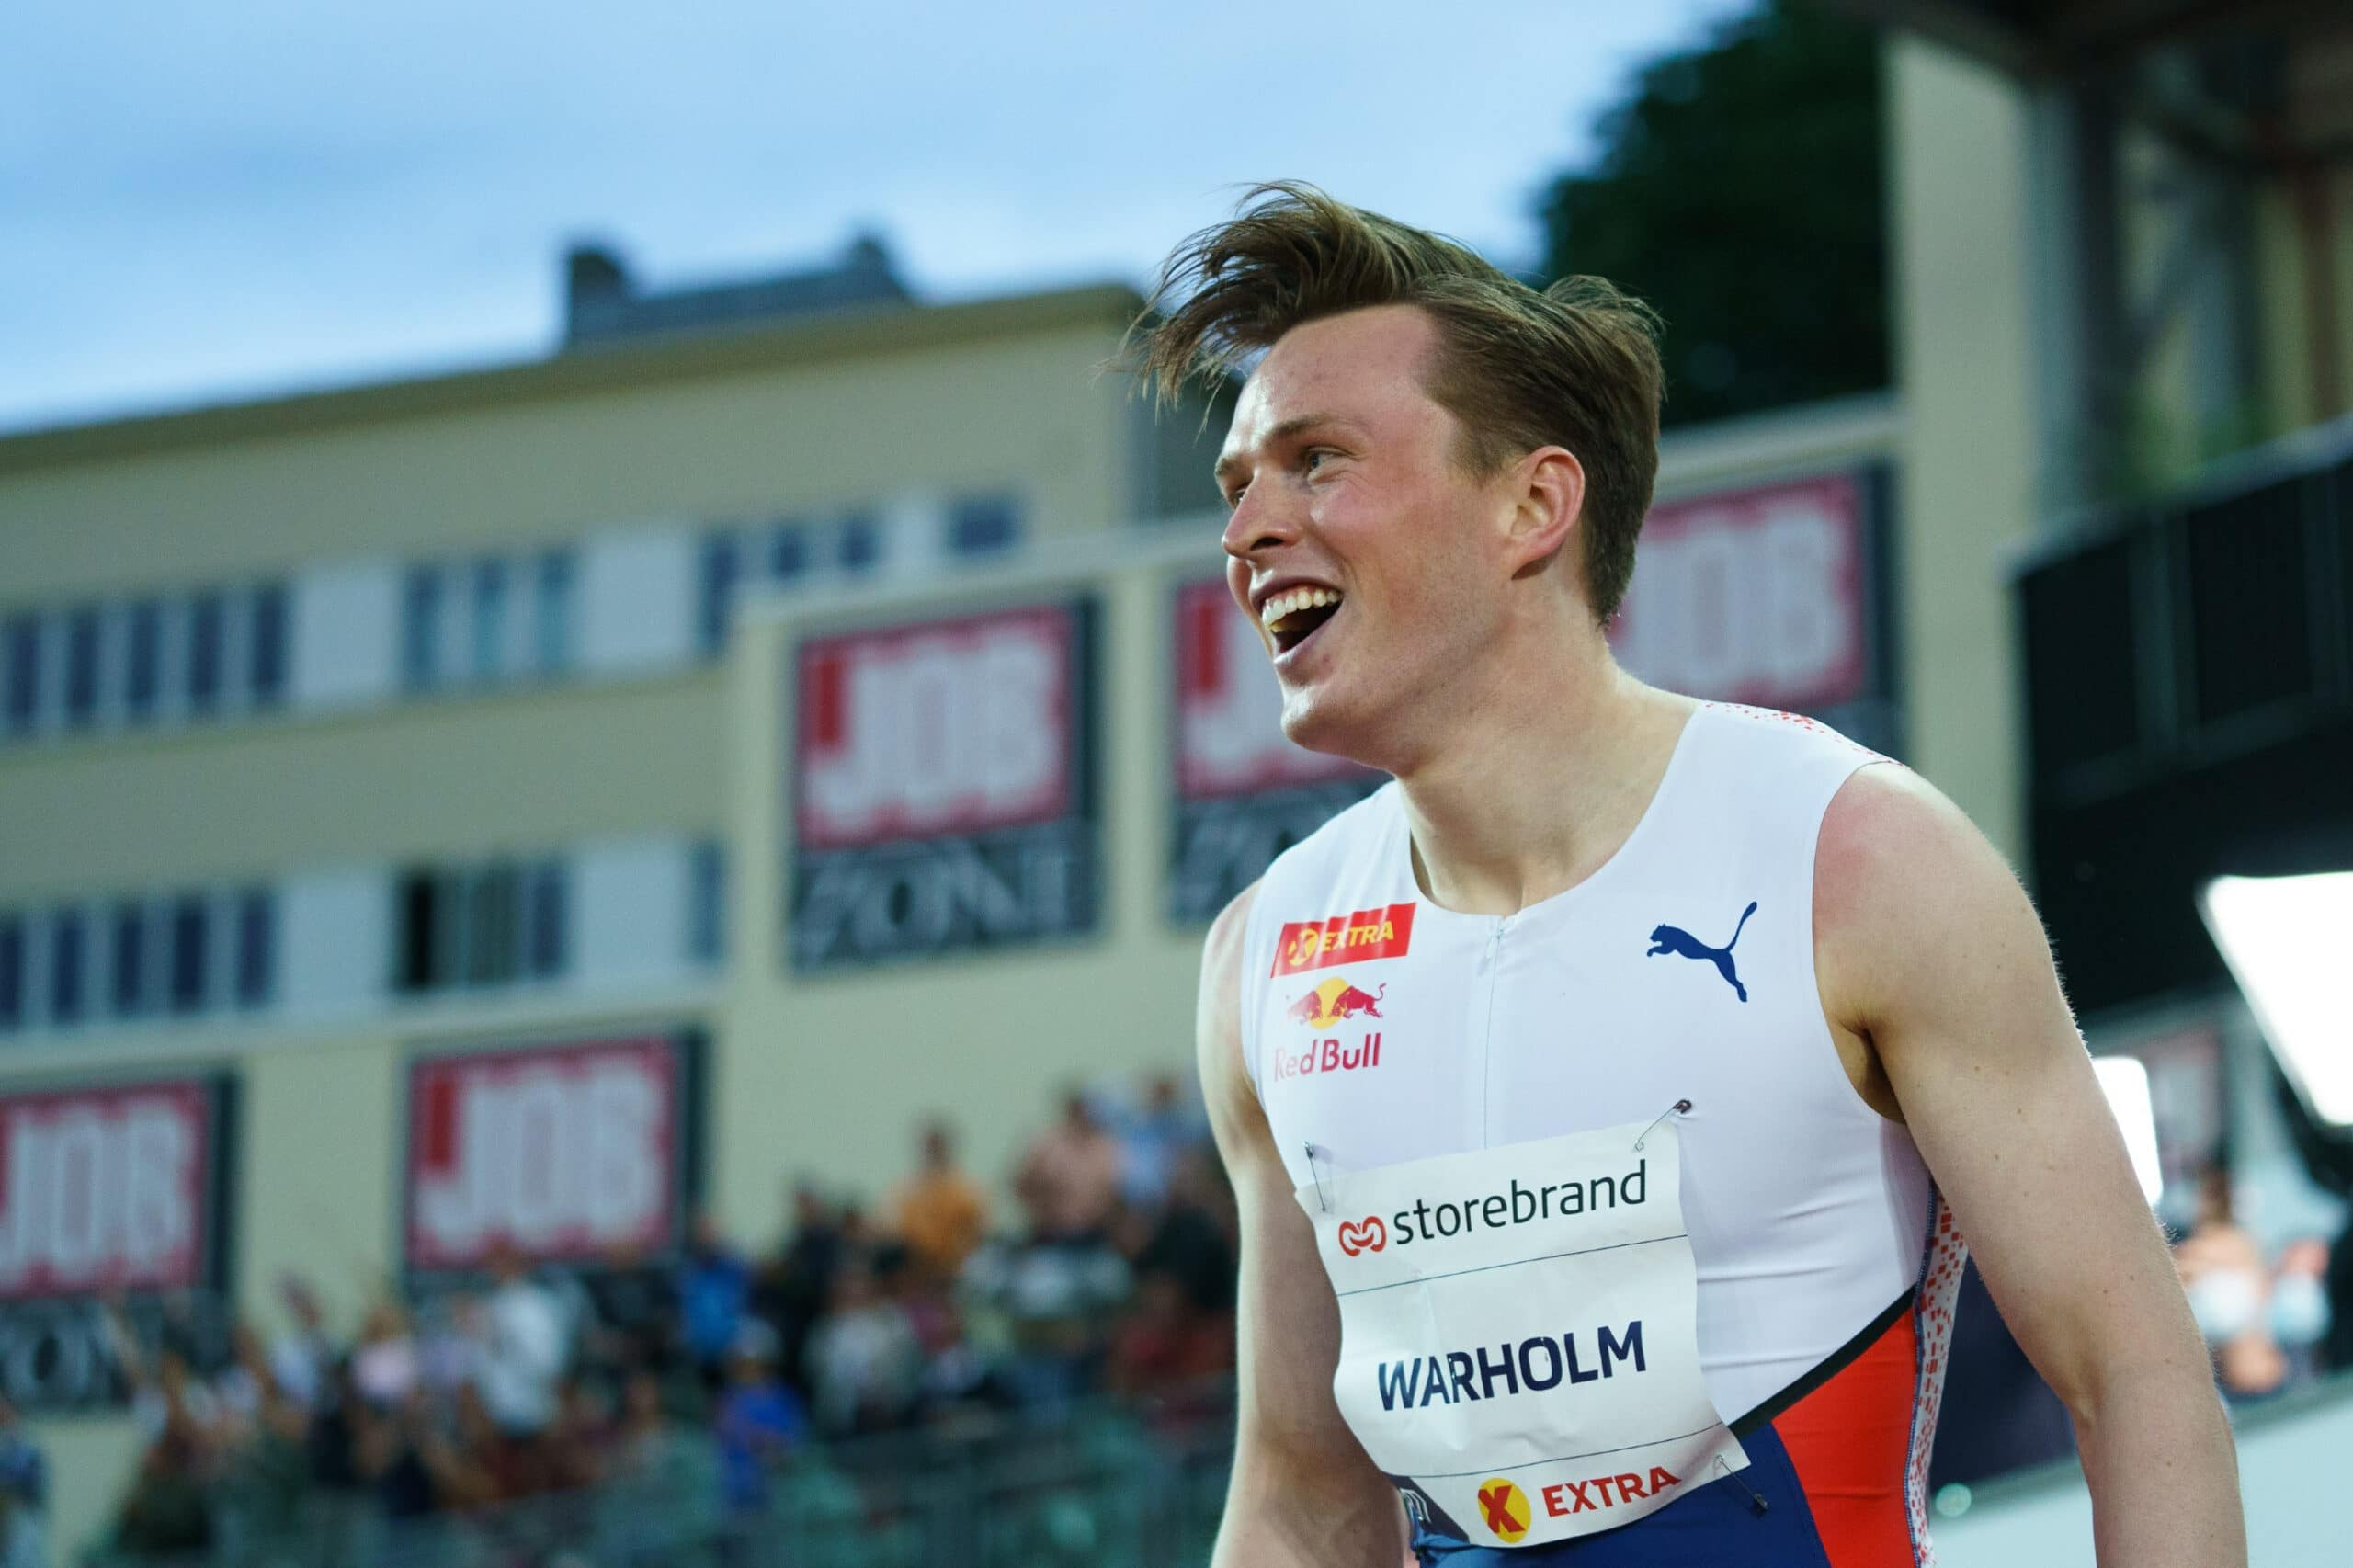 How No Fear And Having Fun Helped Karsten Warholm